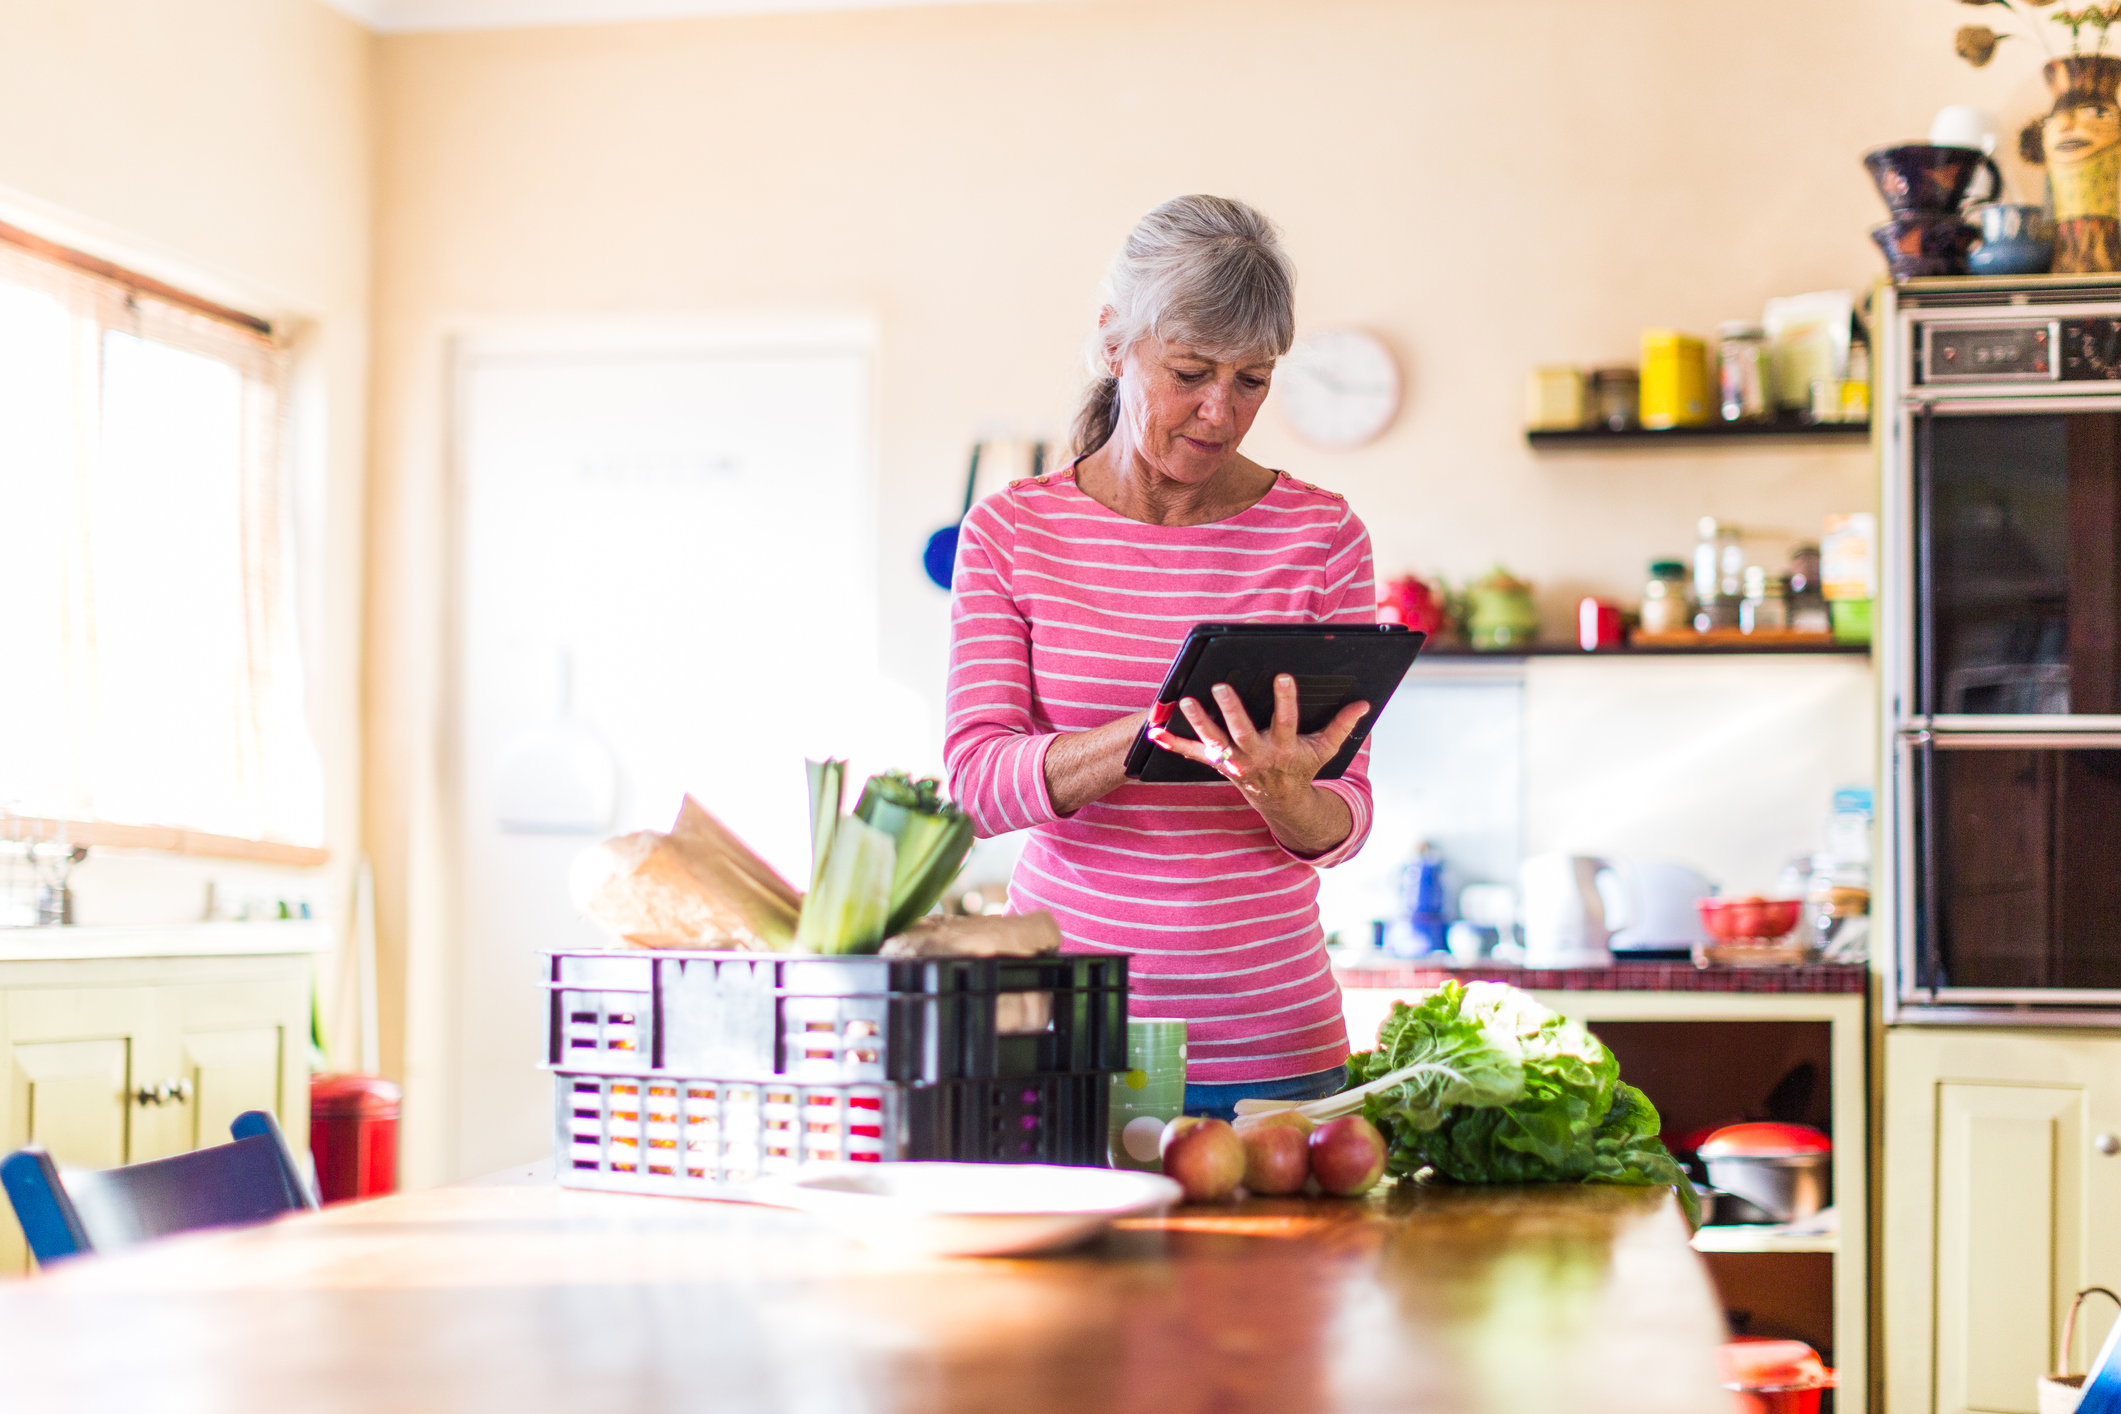 Woman at kitchen checking groceries on tablet